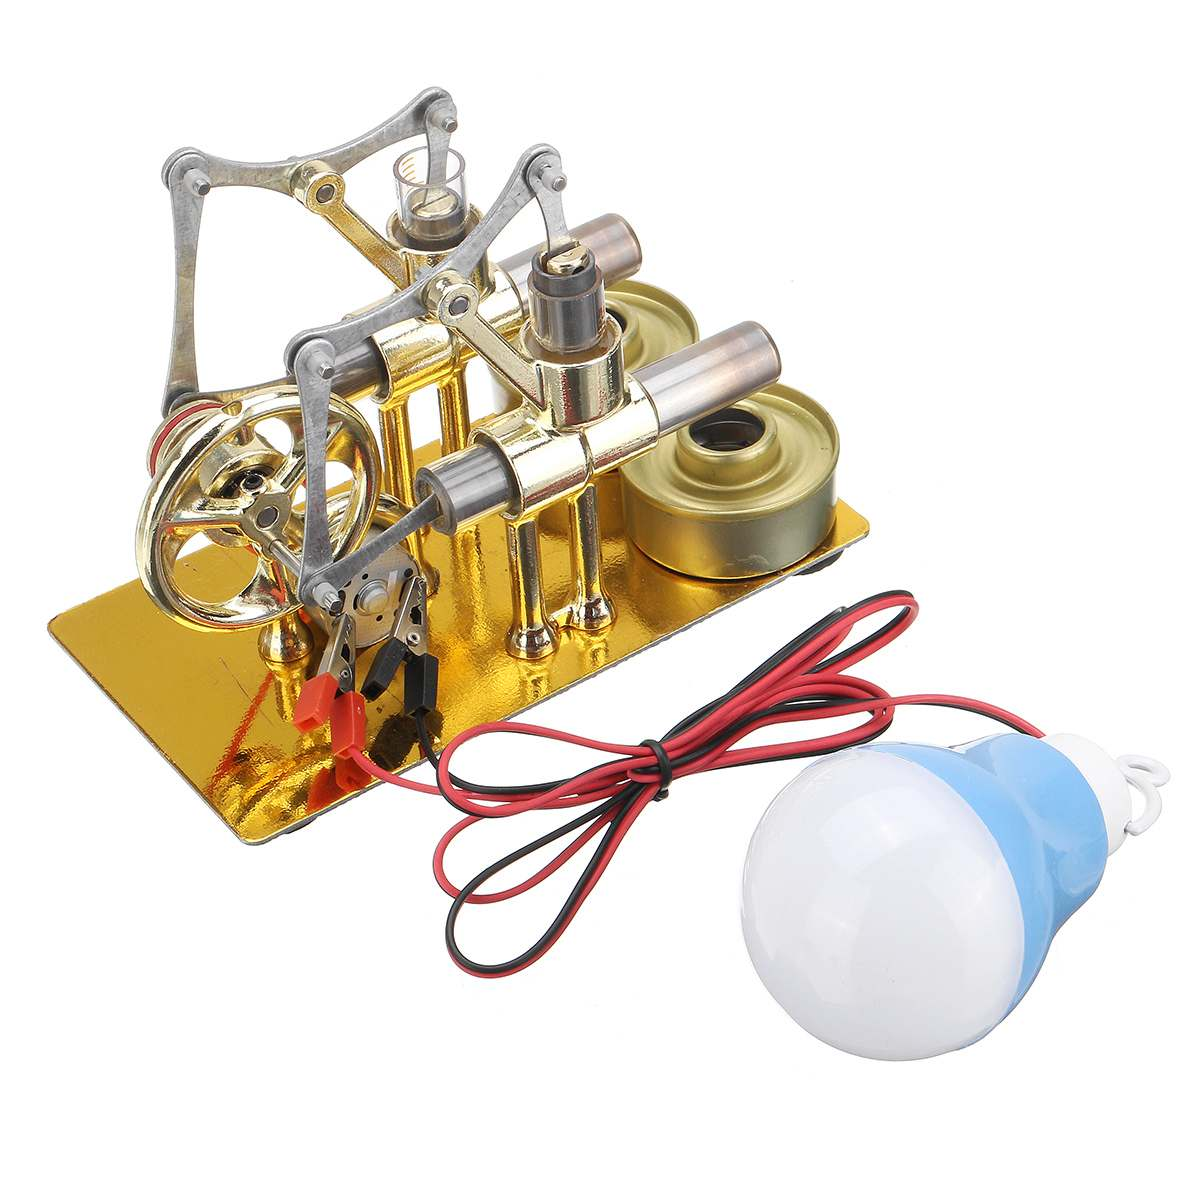 Stirling Engine Metal Double Cylinder Bulb Heat Steam Education Engine Model Physics Science Power Generation Experiment Toy